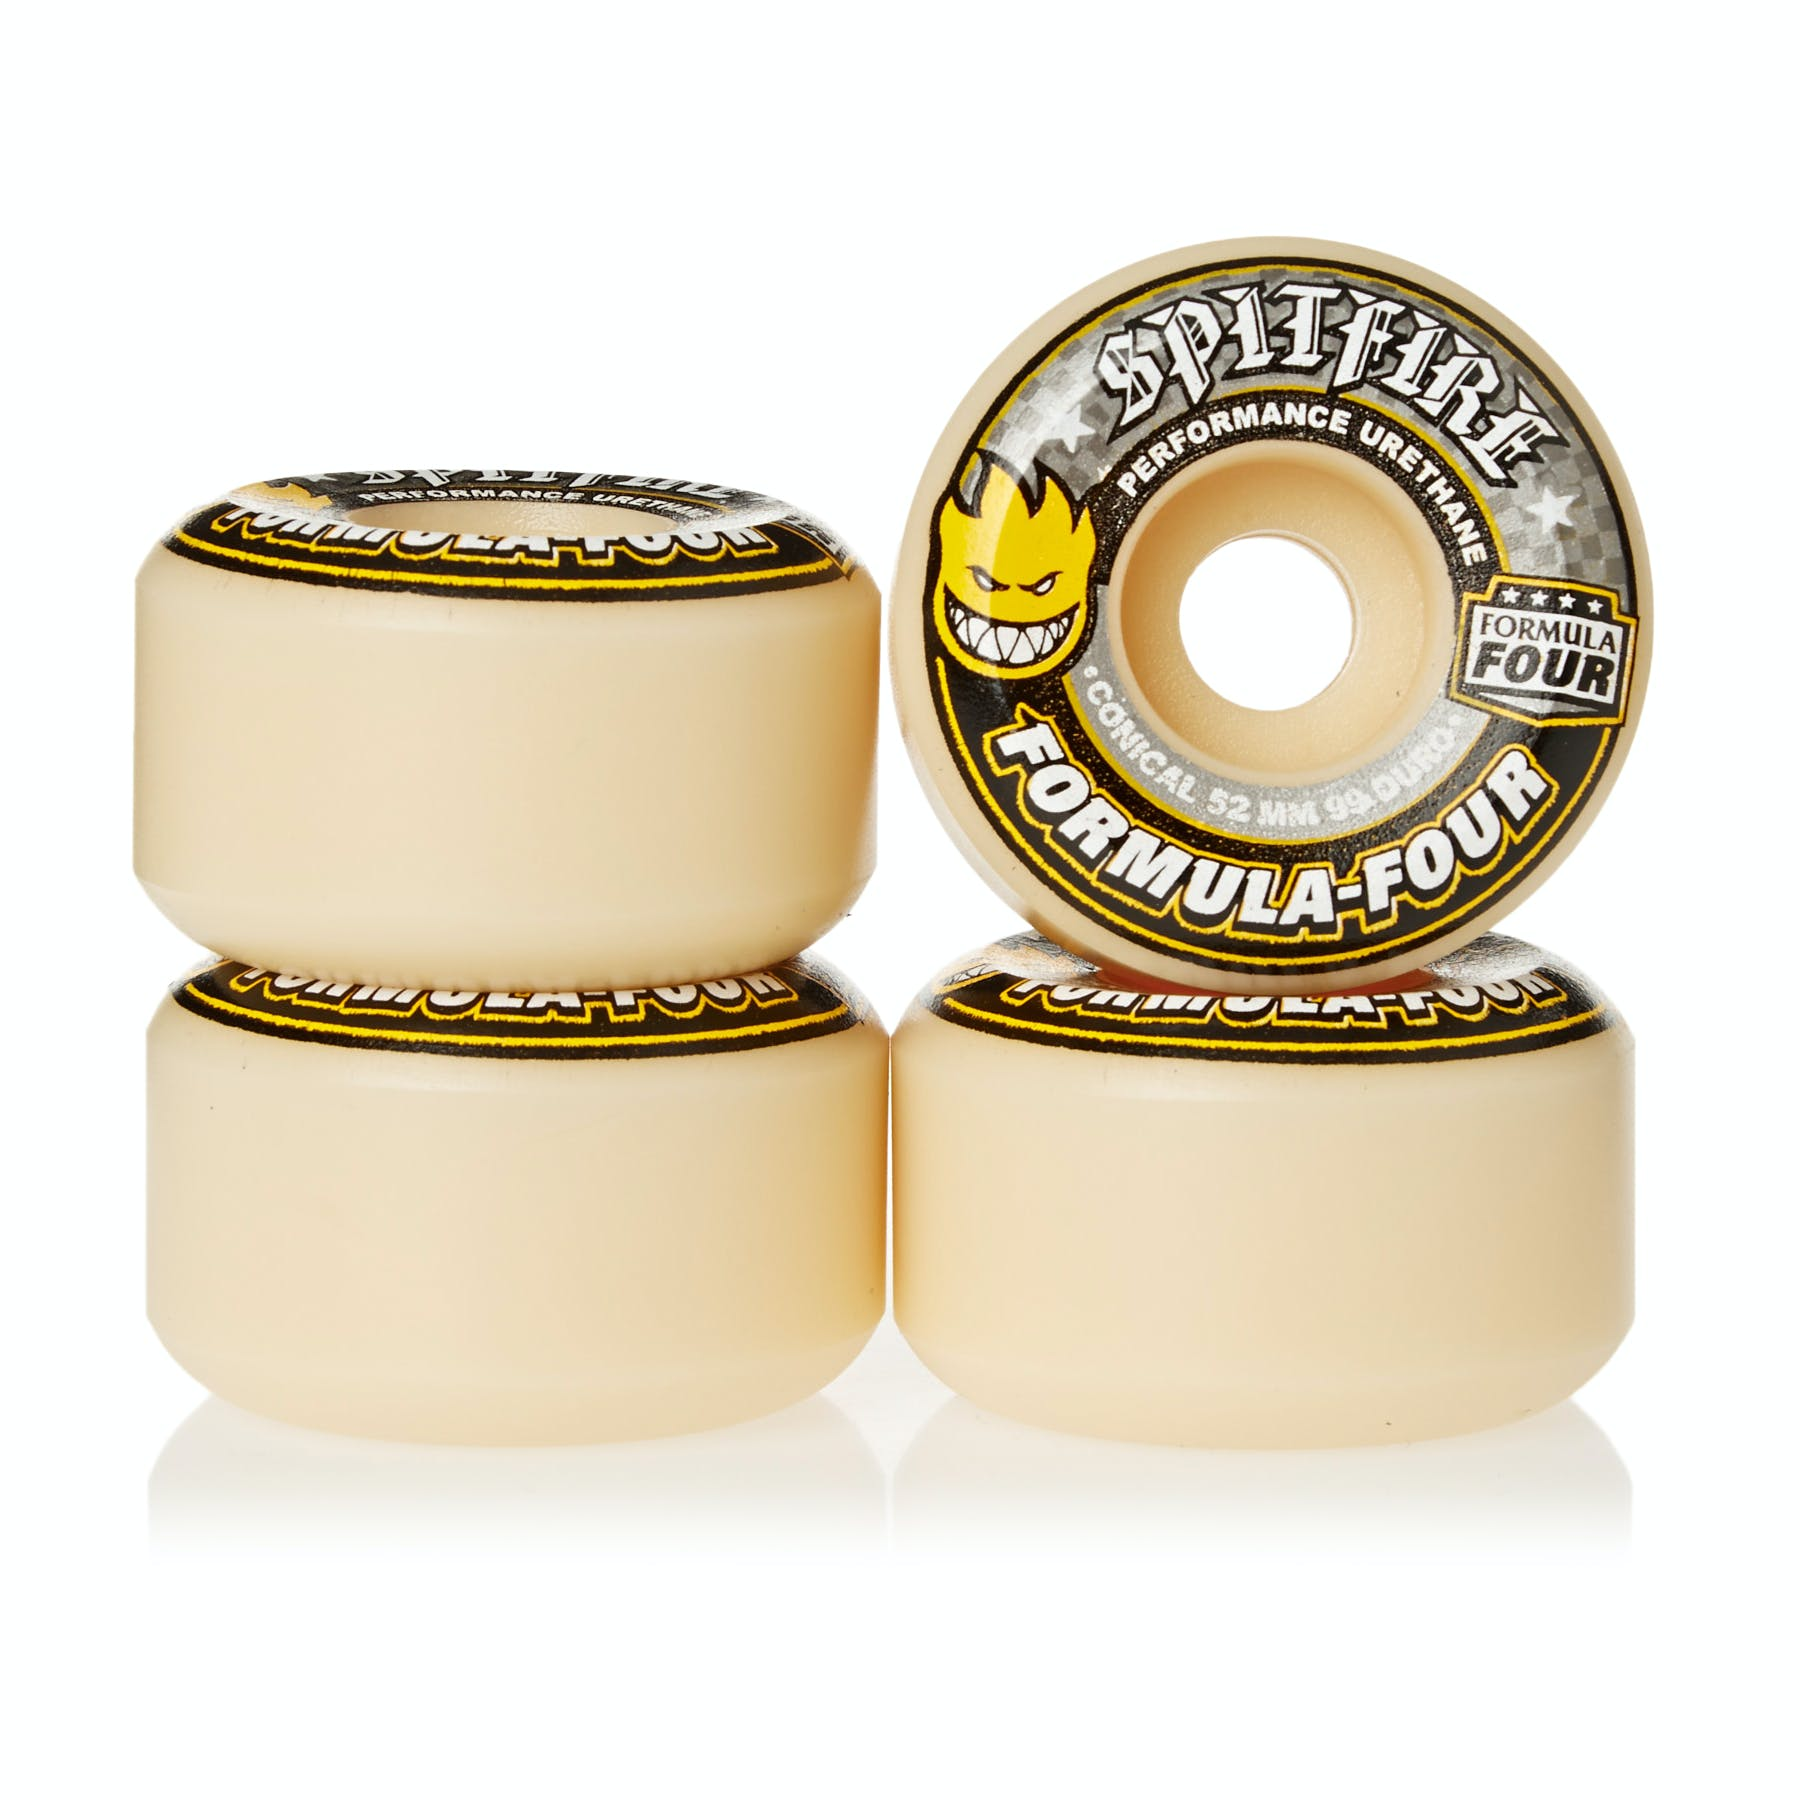 Spitfire Formula Four Wheels Conical 99DU Natural 52mm Kolečko ke skateboardu